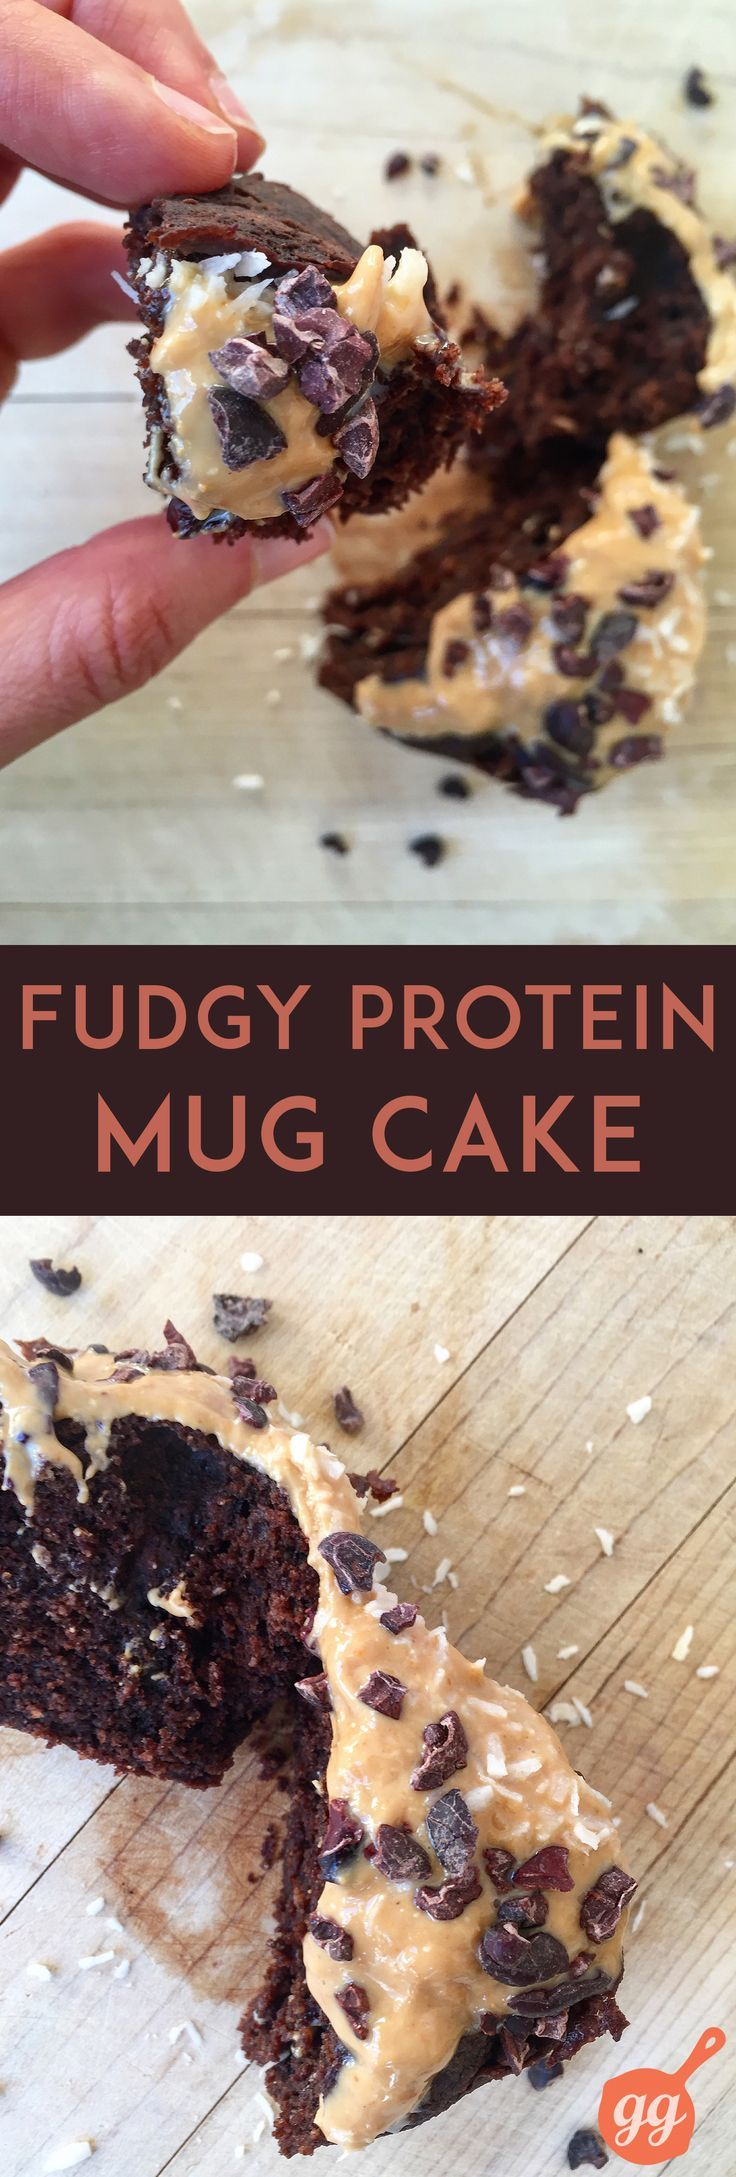 (4 ingredients only!) Fudgy Protein Mug Cake | GrokGrub.com